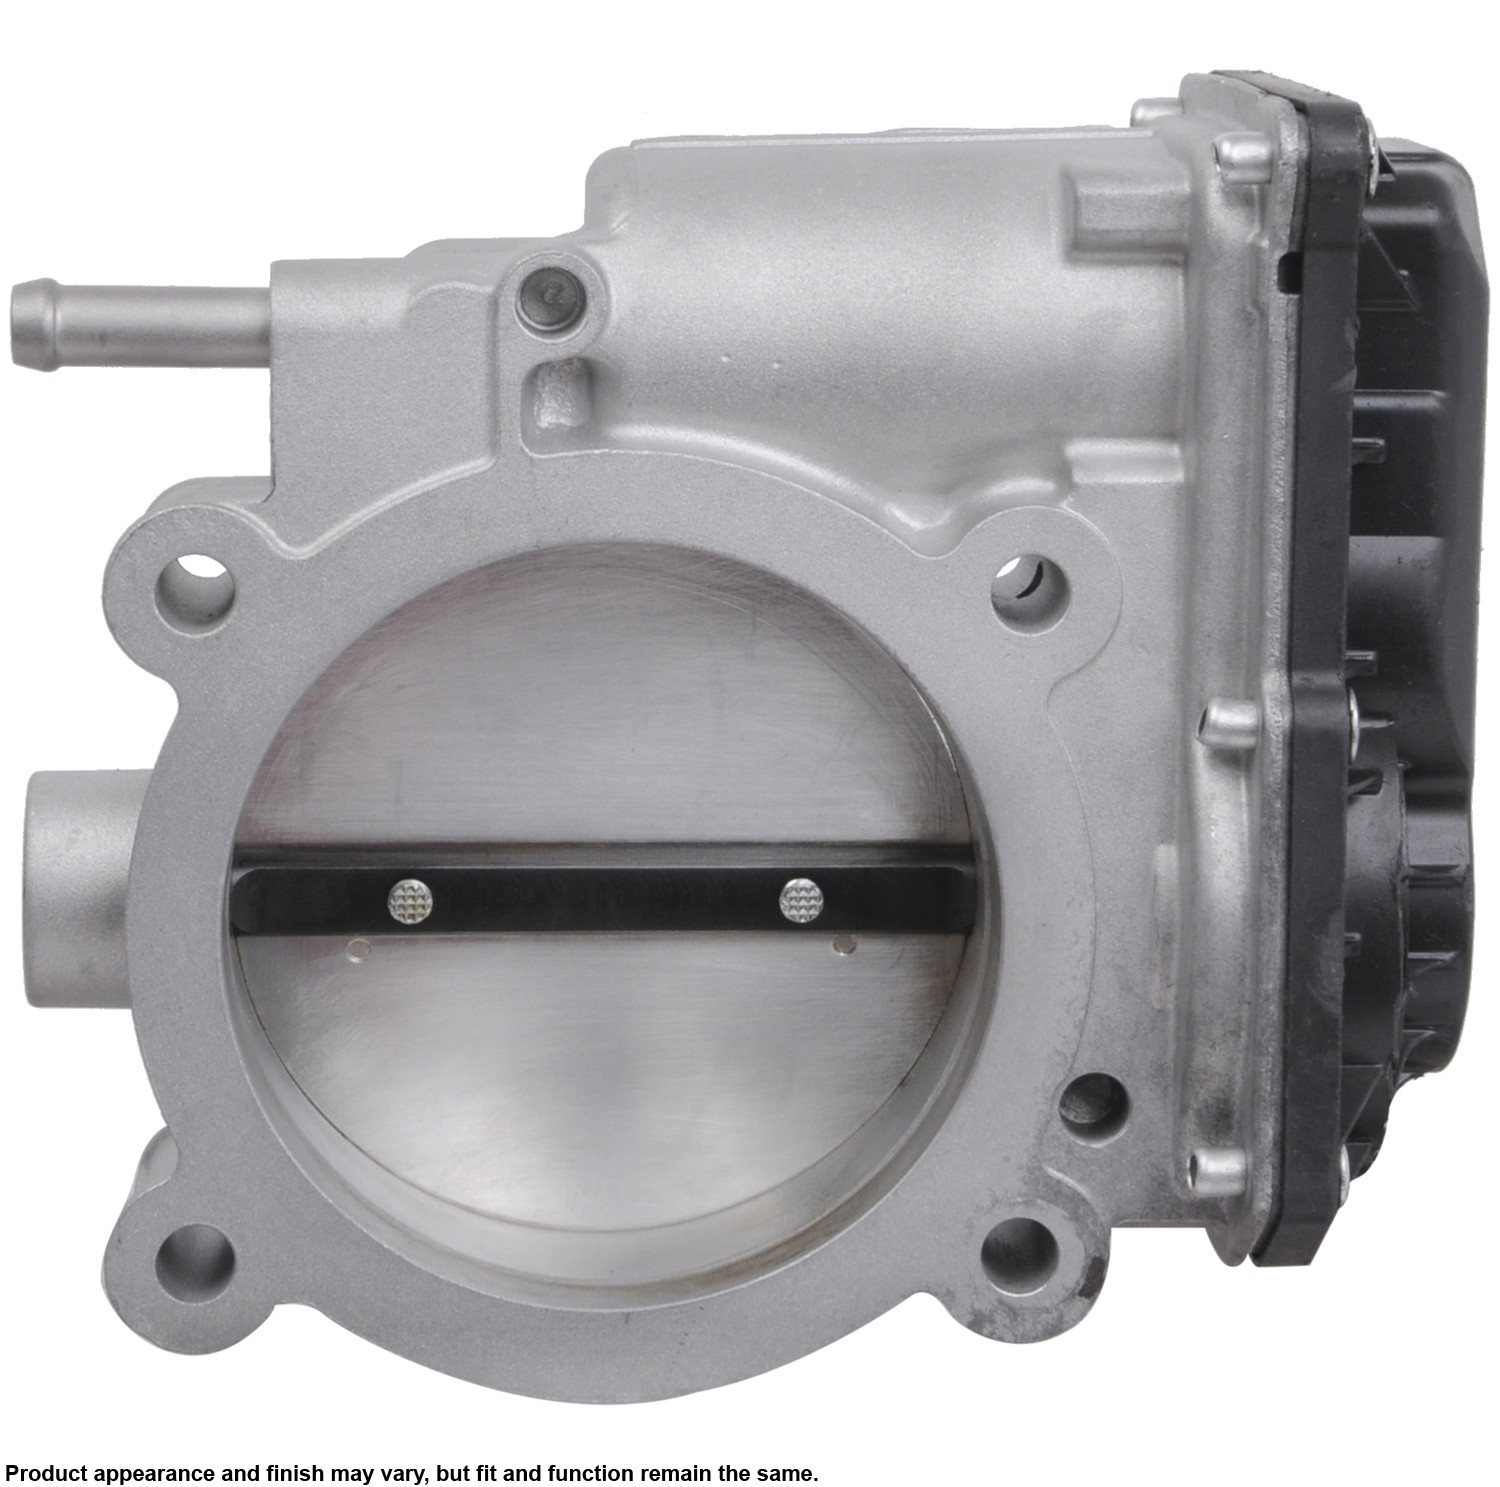 2011 Toyota Tundra Fuel Injection Throttle Body